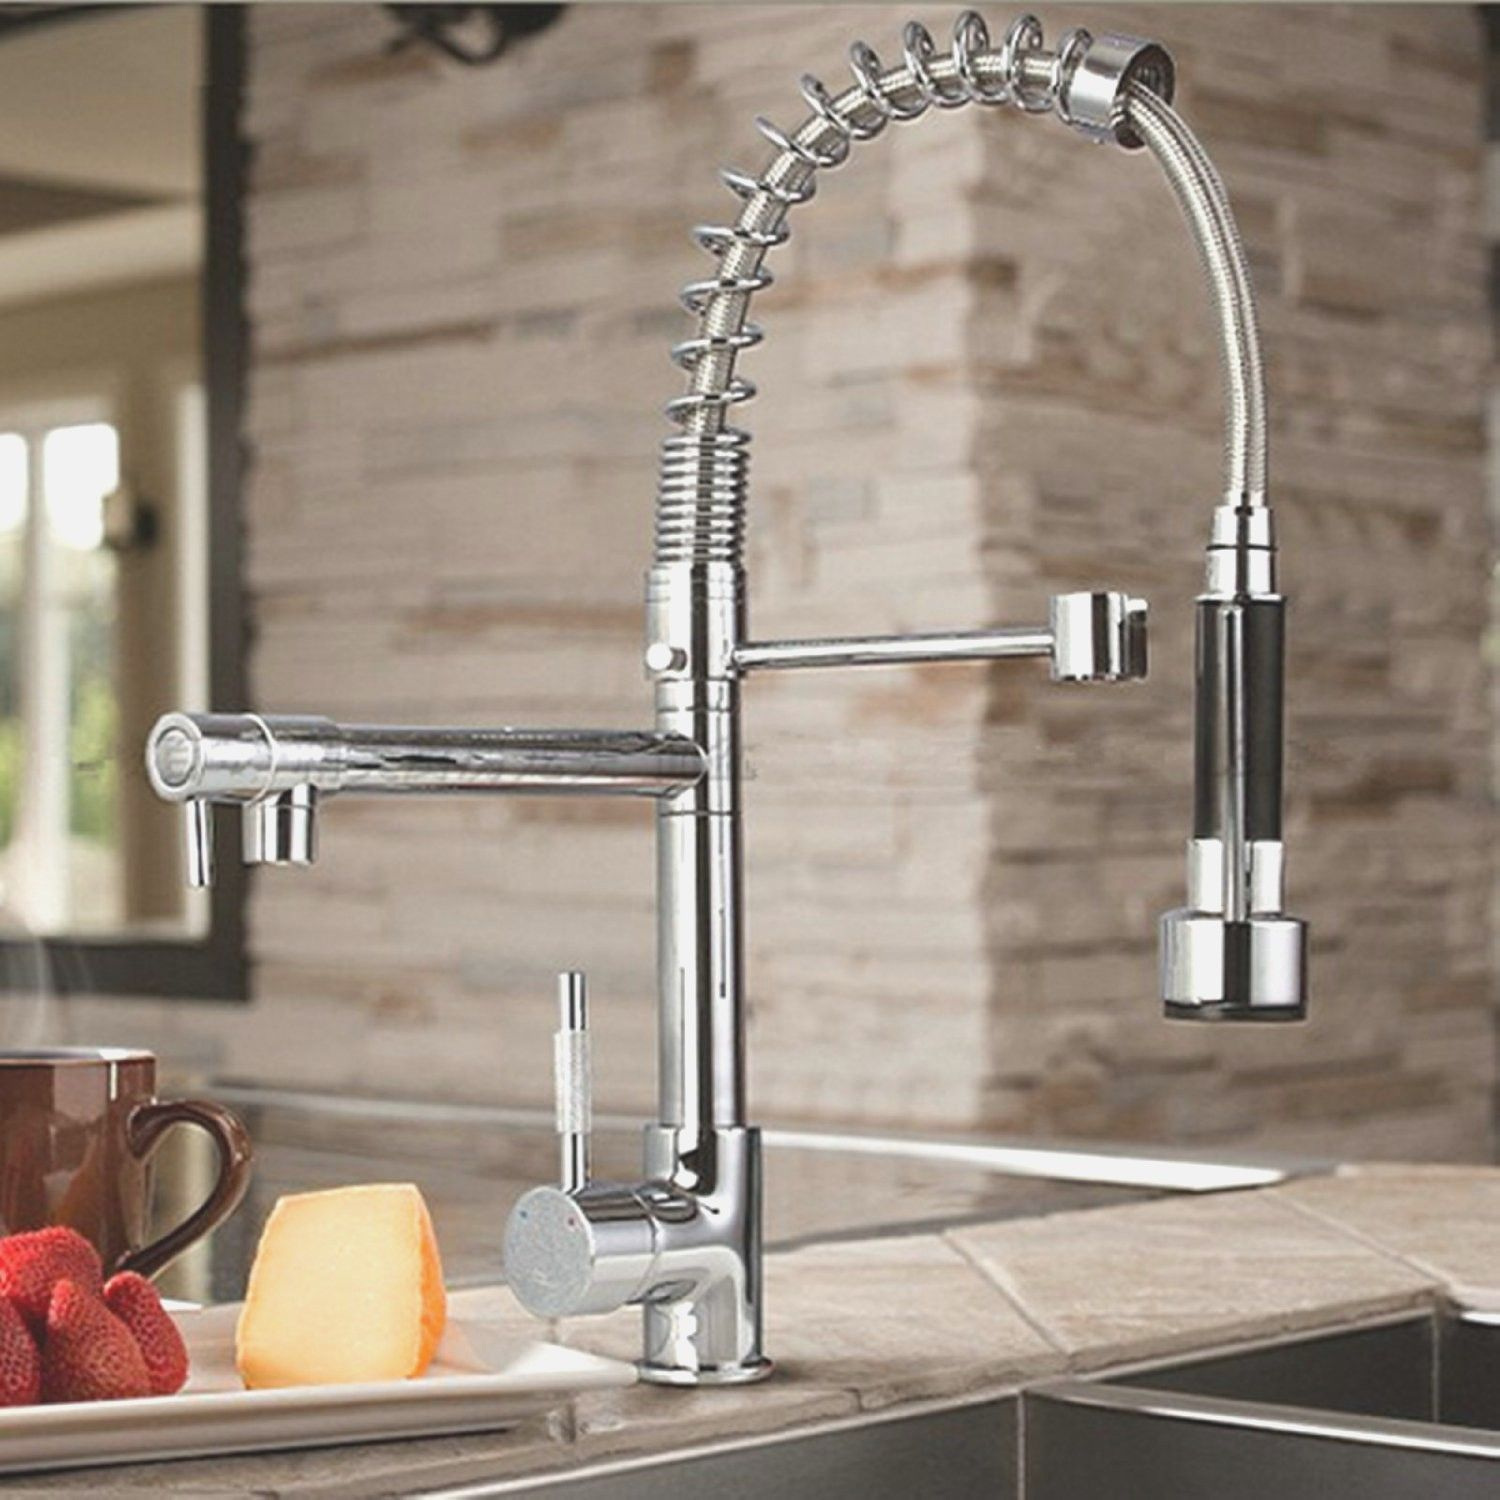 Superb Kitchen Sink Faucet With Sprayer   Home Depot Kitchen Sink Faucet With  Sprayer, Kitchen Faucet Sprayer With Brush, Kitchen Faucet With Integrated  Sprayer, ...